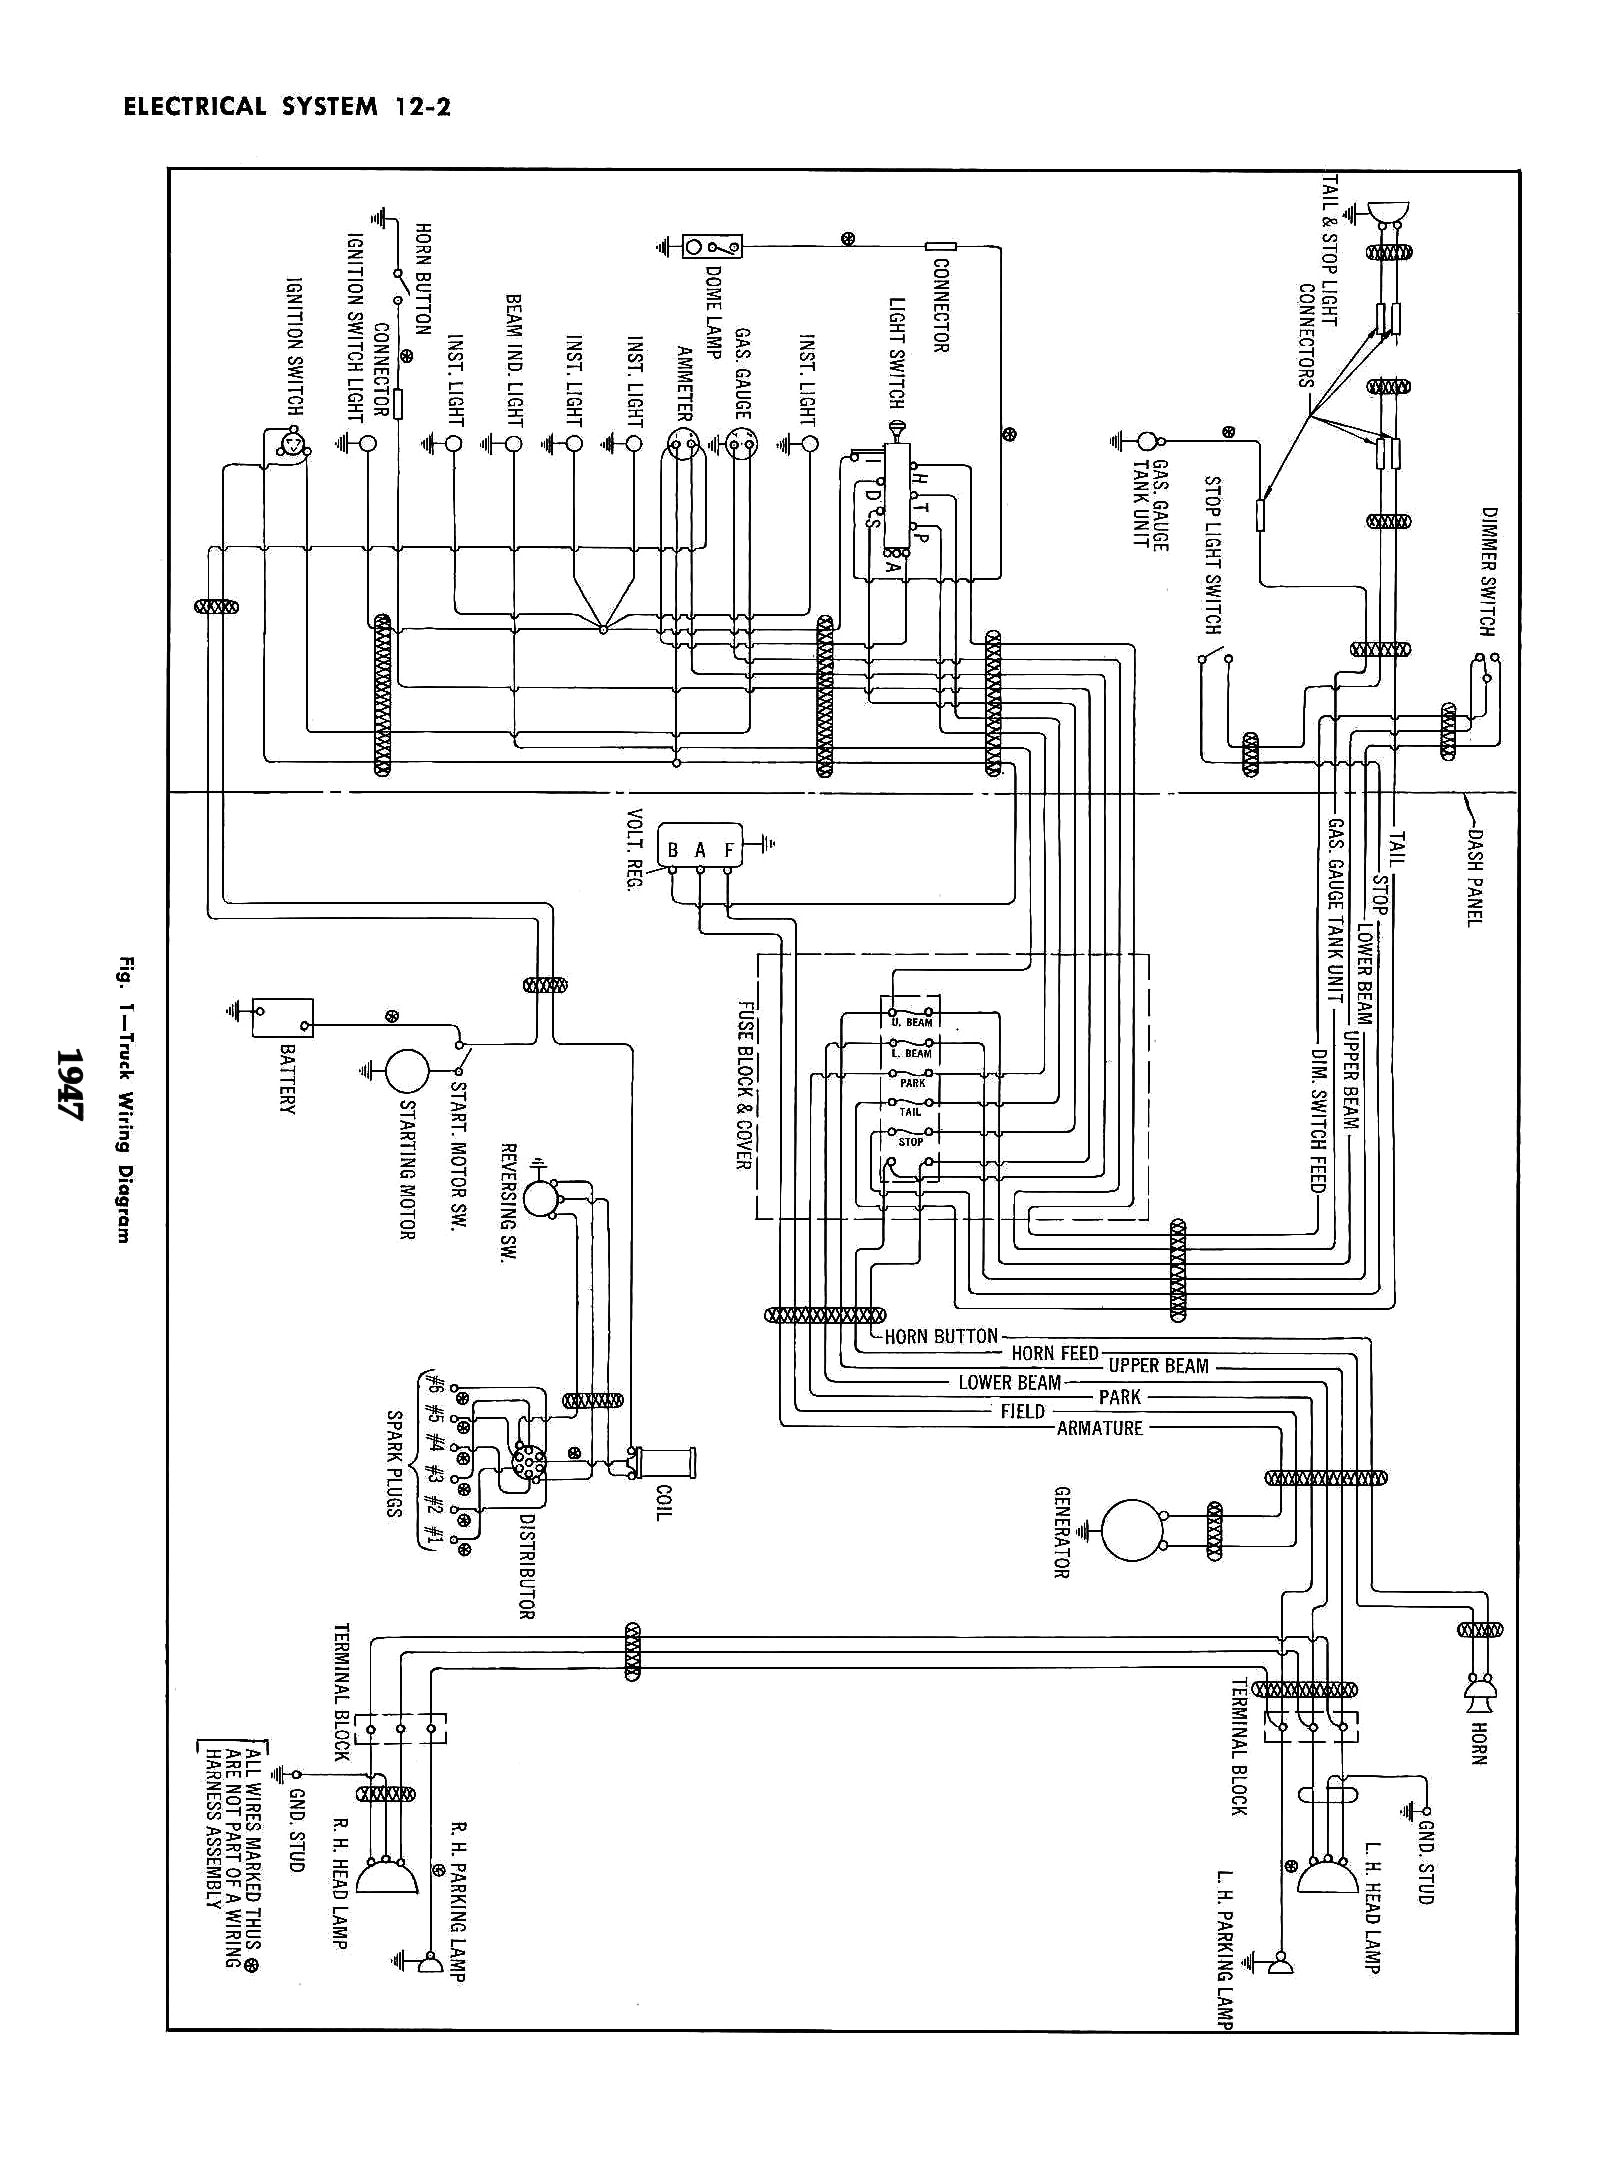 47ctsm1202 chevy wiring diagrams Wiring Schematics for Johnson Outboards at reclaimingppi.co